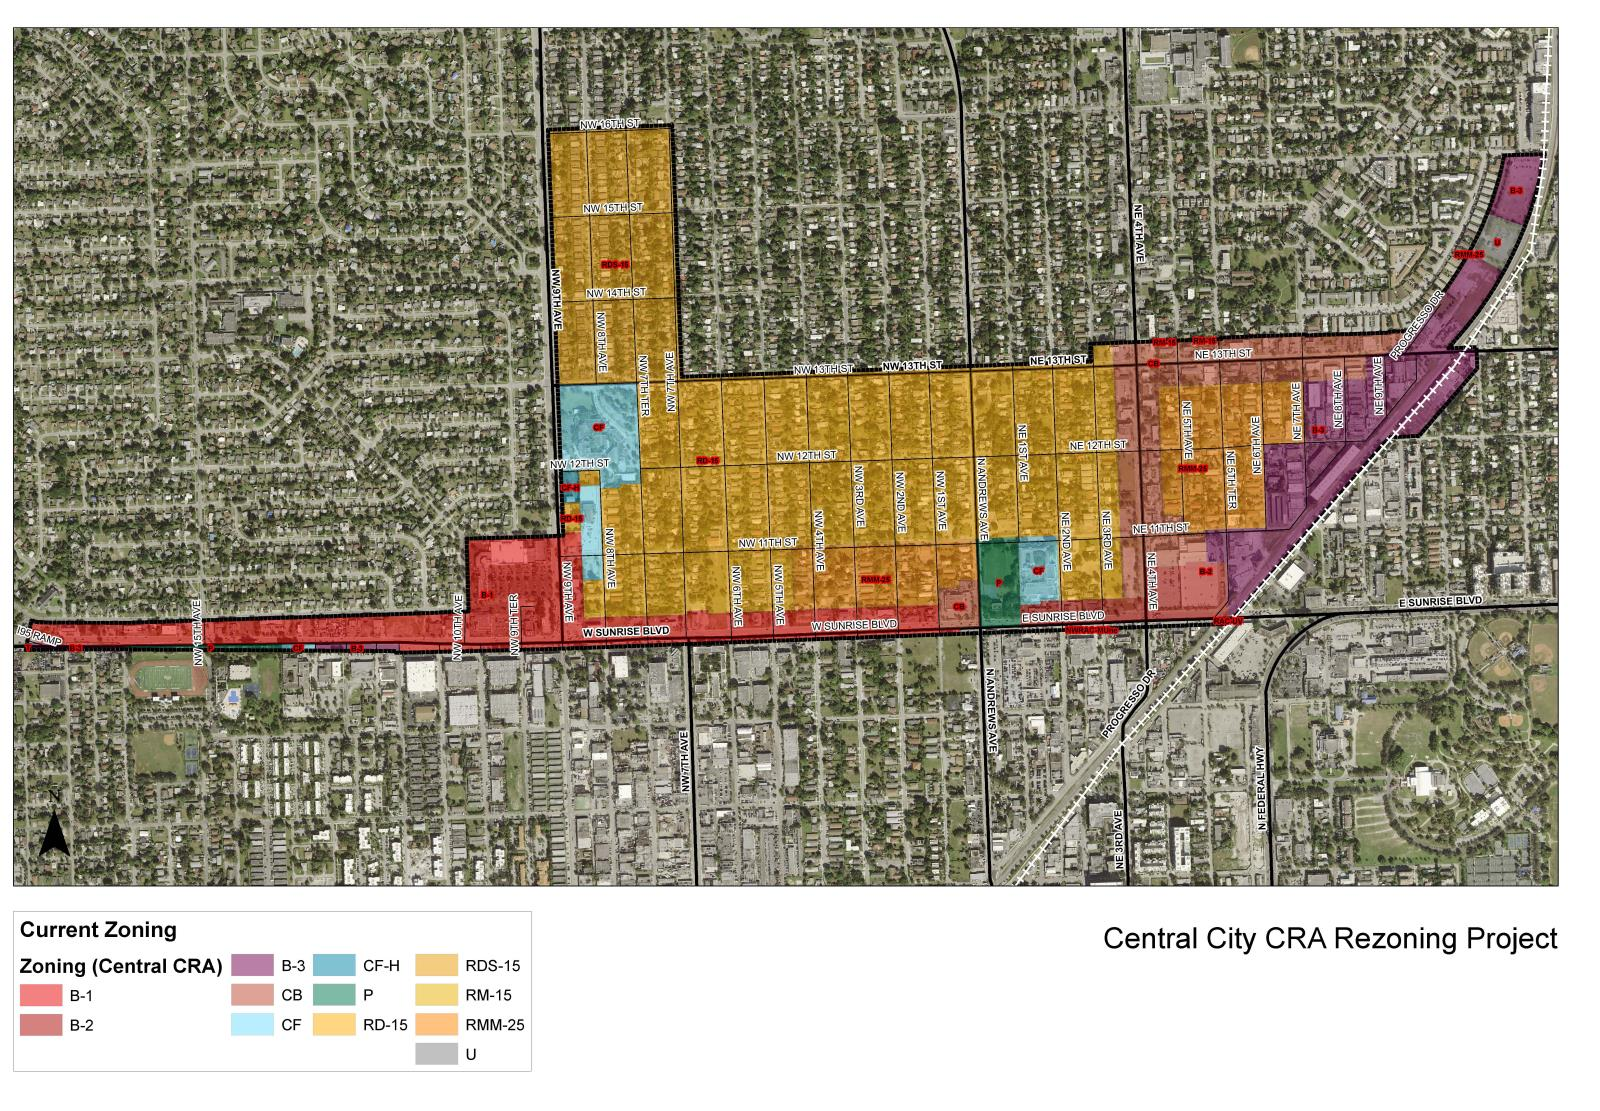 Central City CRA Rezoning Project